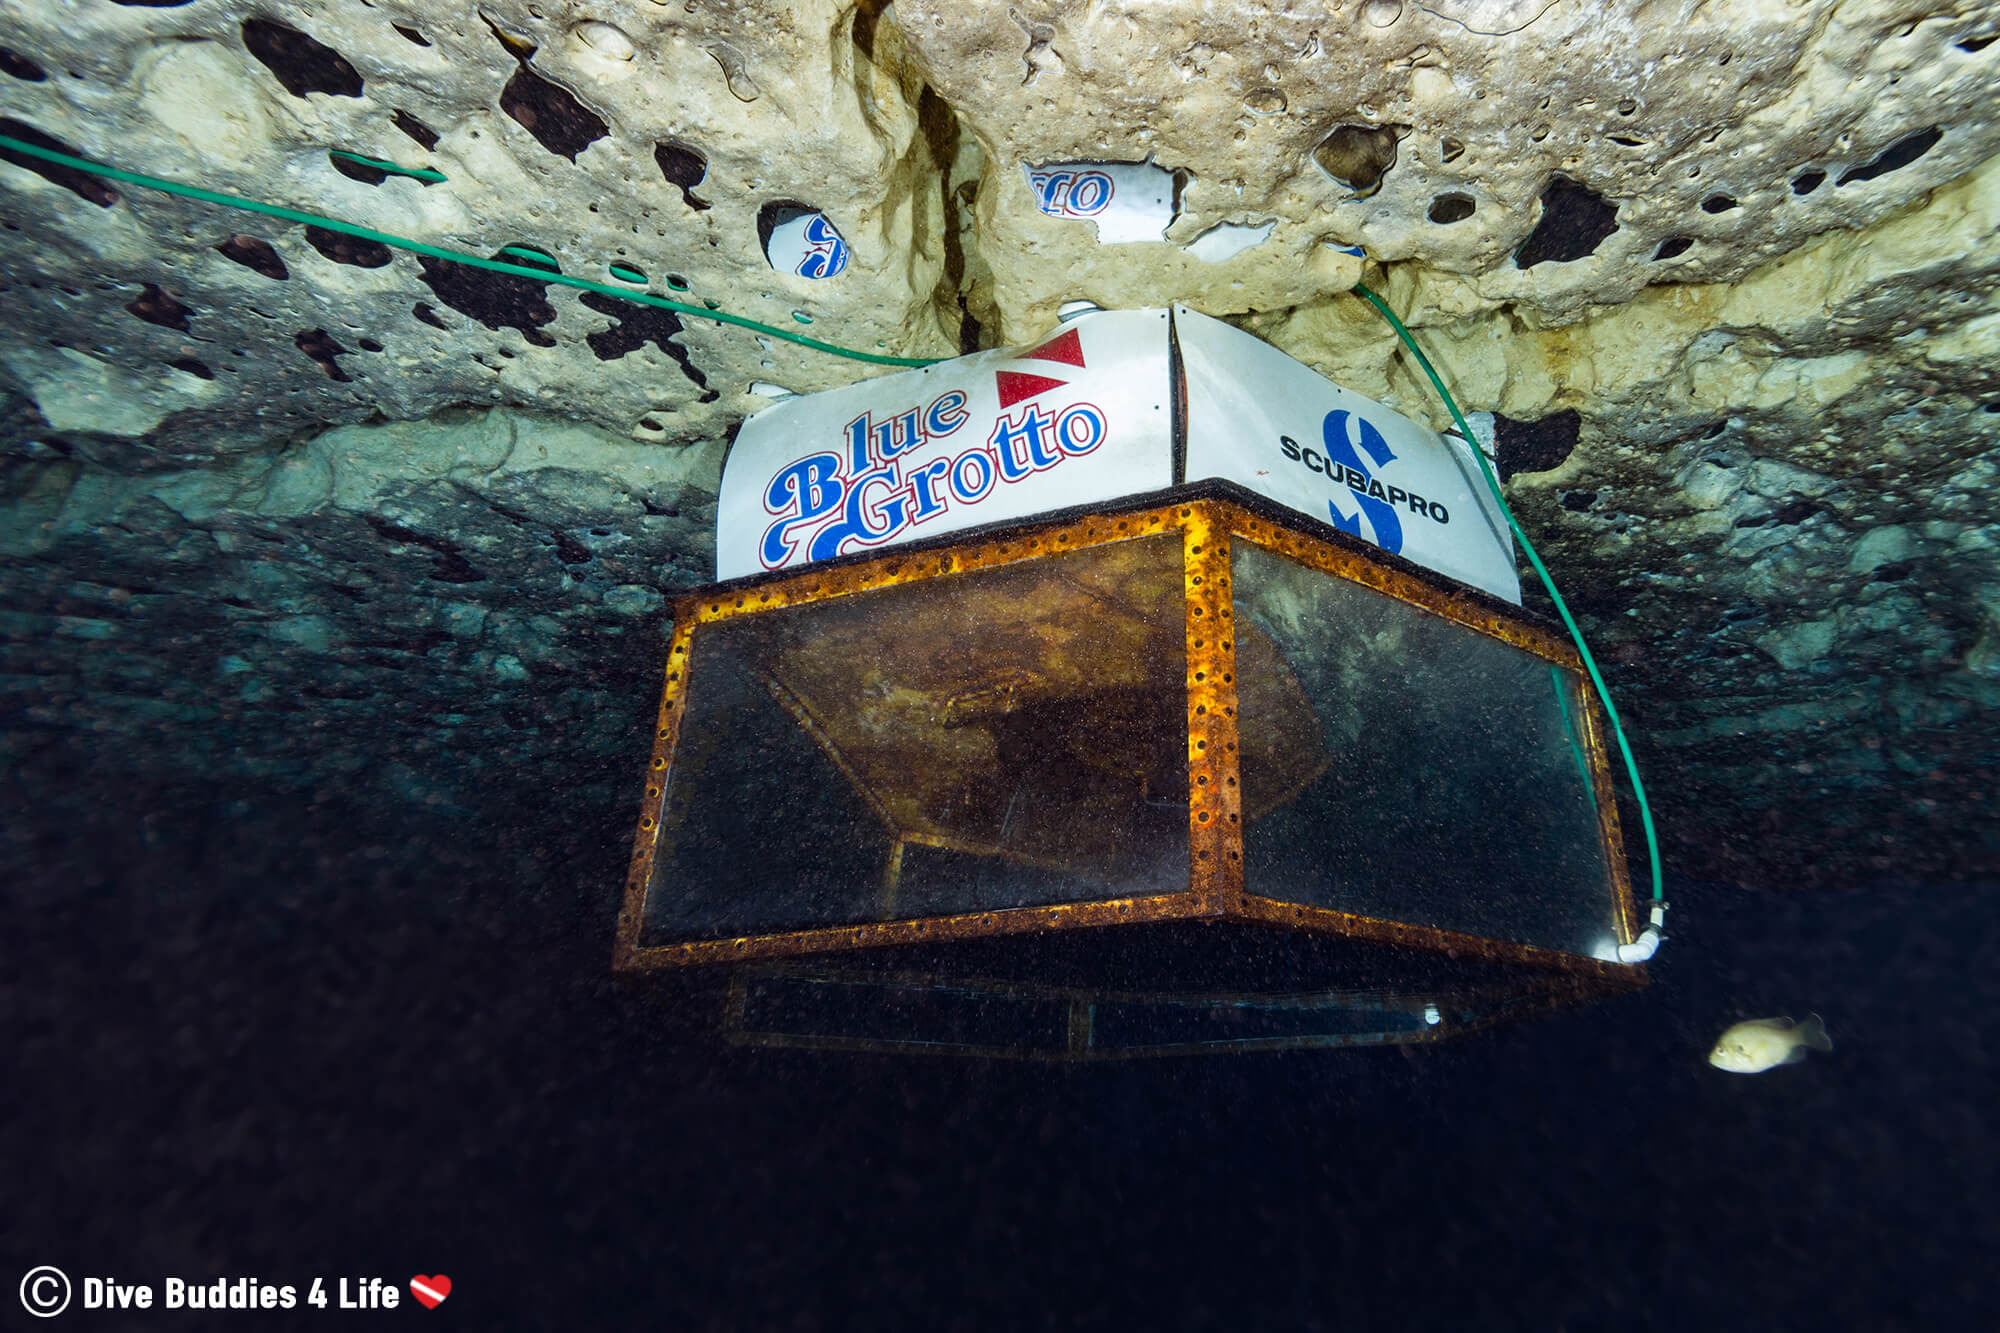 The Blue Grotto Compressed Air Diving Bell, Florida, USA